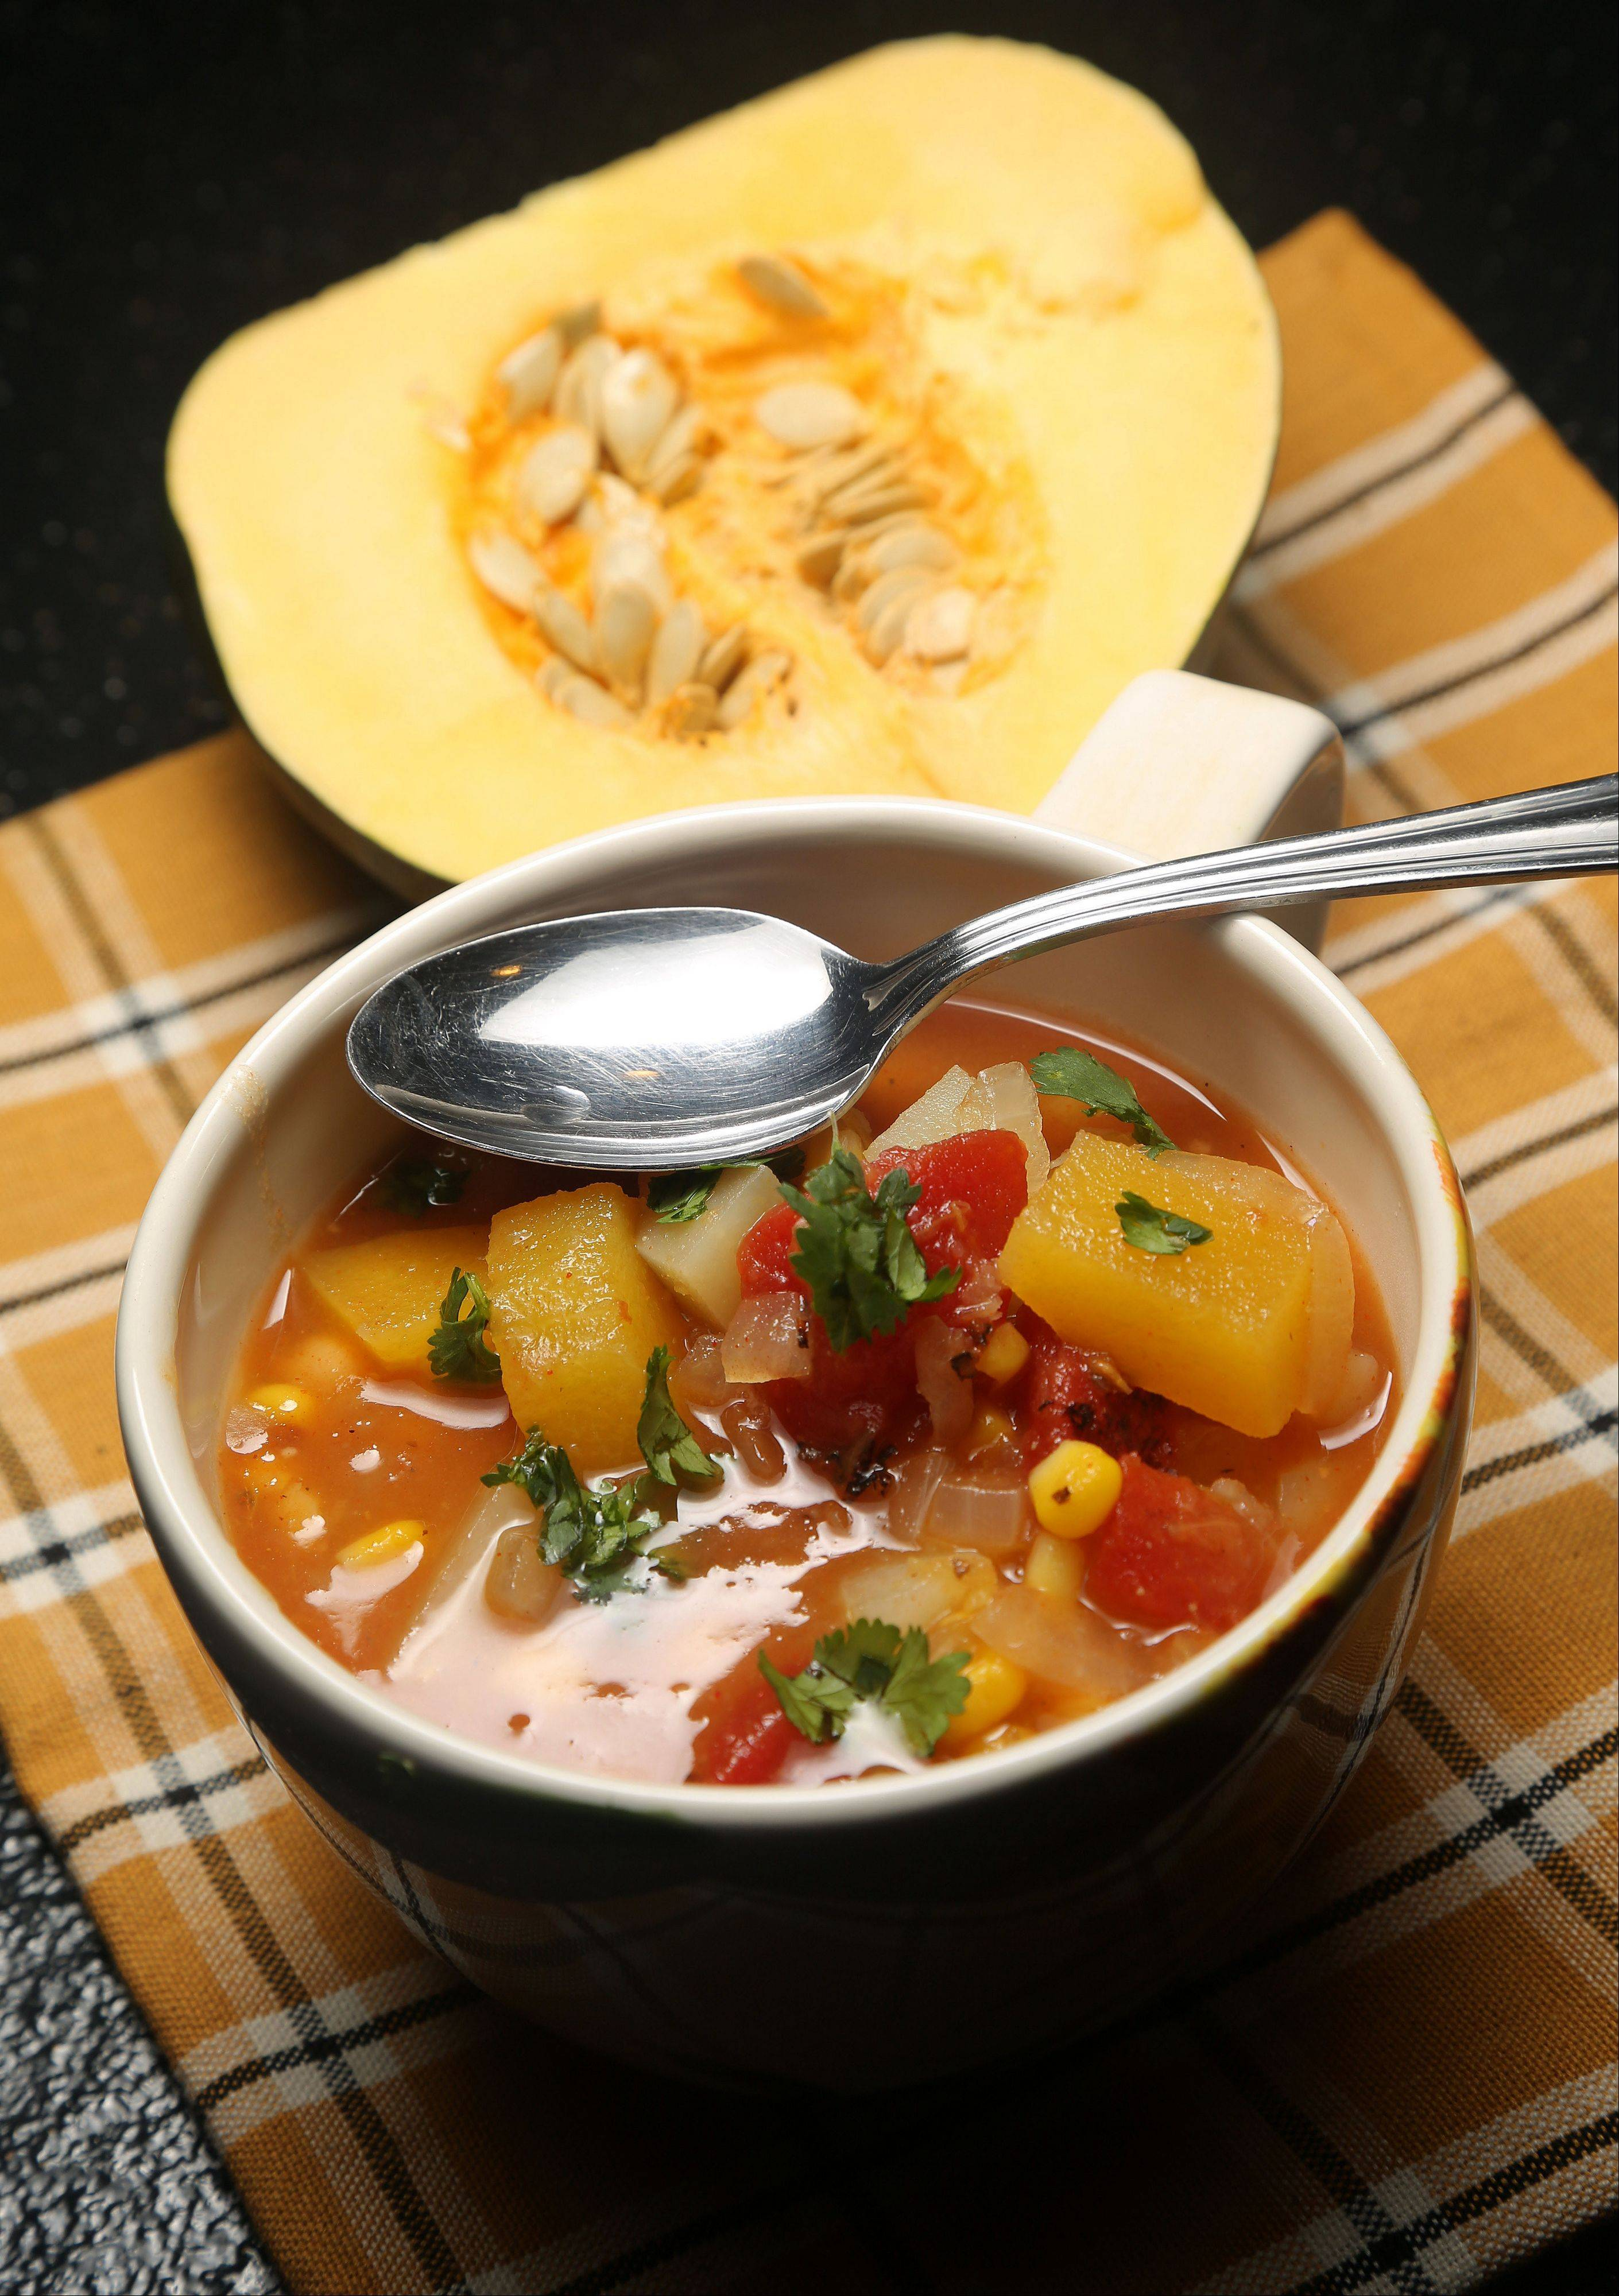 Beans add healthful fiber and protein and make this autumn squash soup a hearty meatless meal.